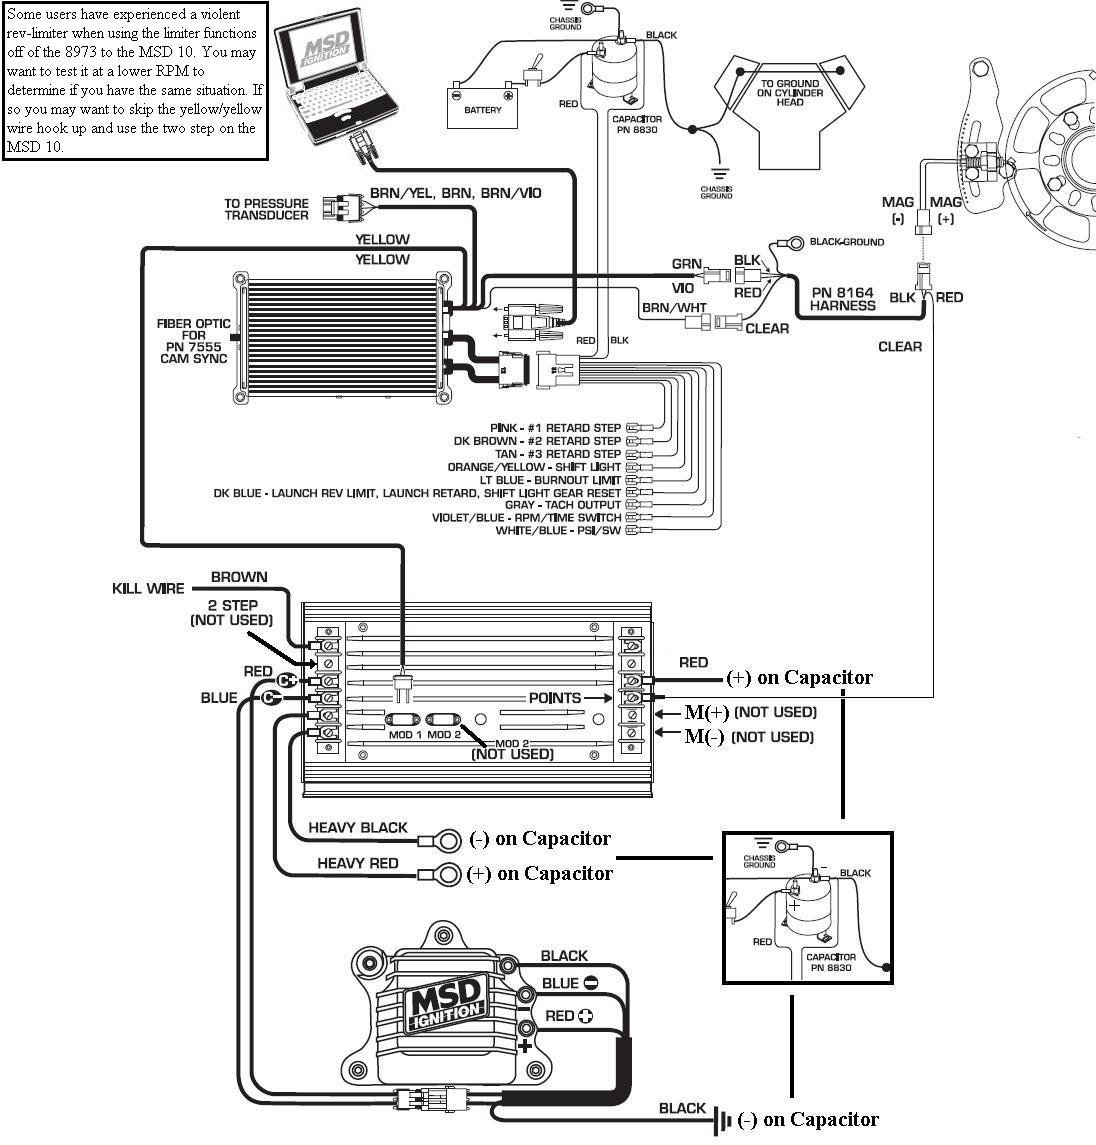 small resolution of 8973 to msd 10 msd blog msd ford wiring diagrams msd streetfire 5520 wiring diagram